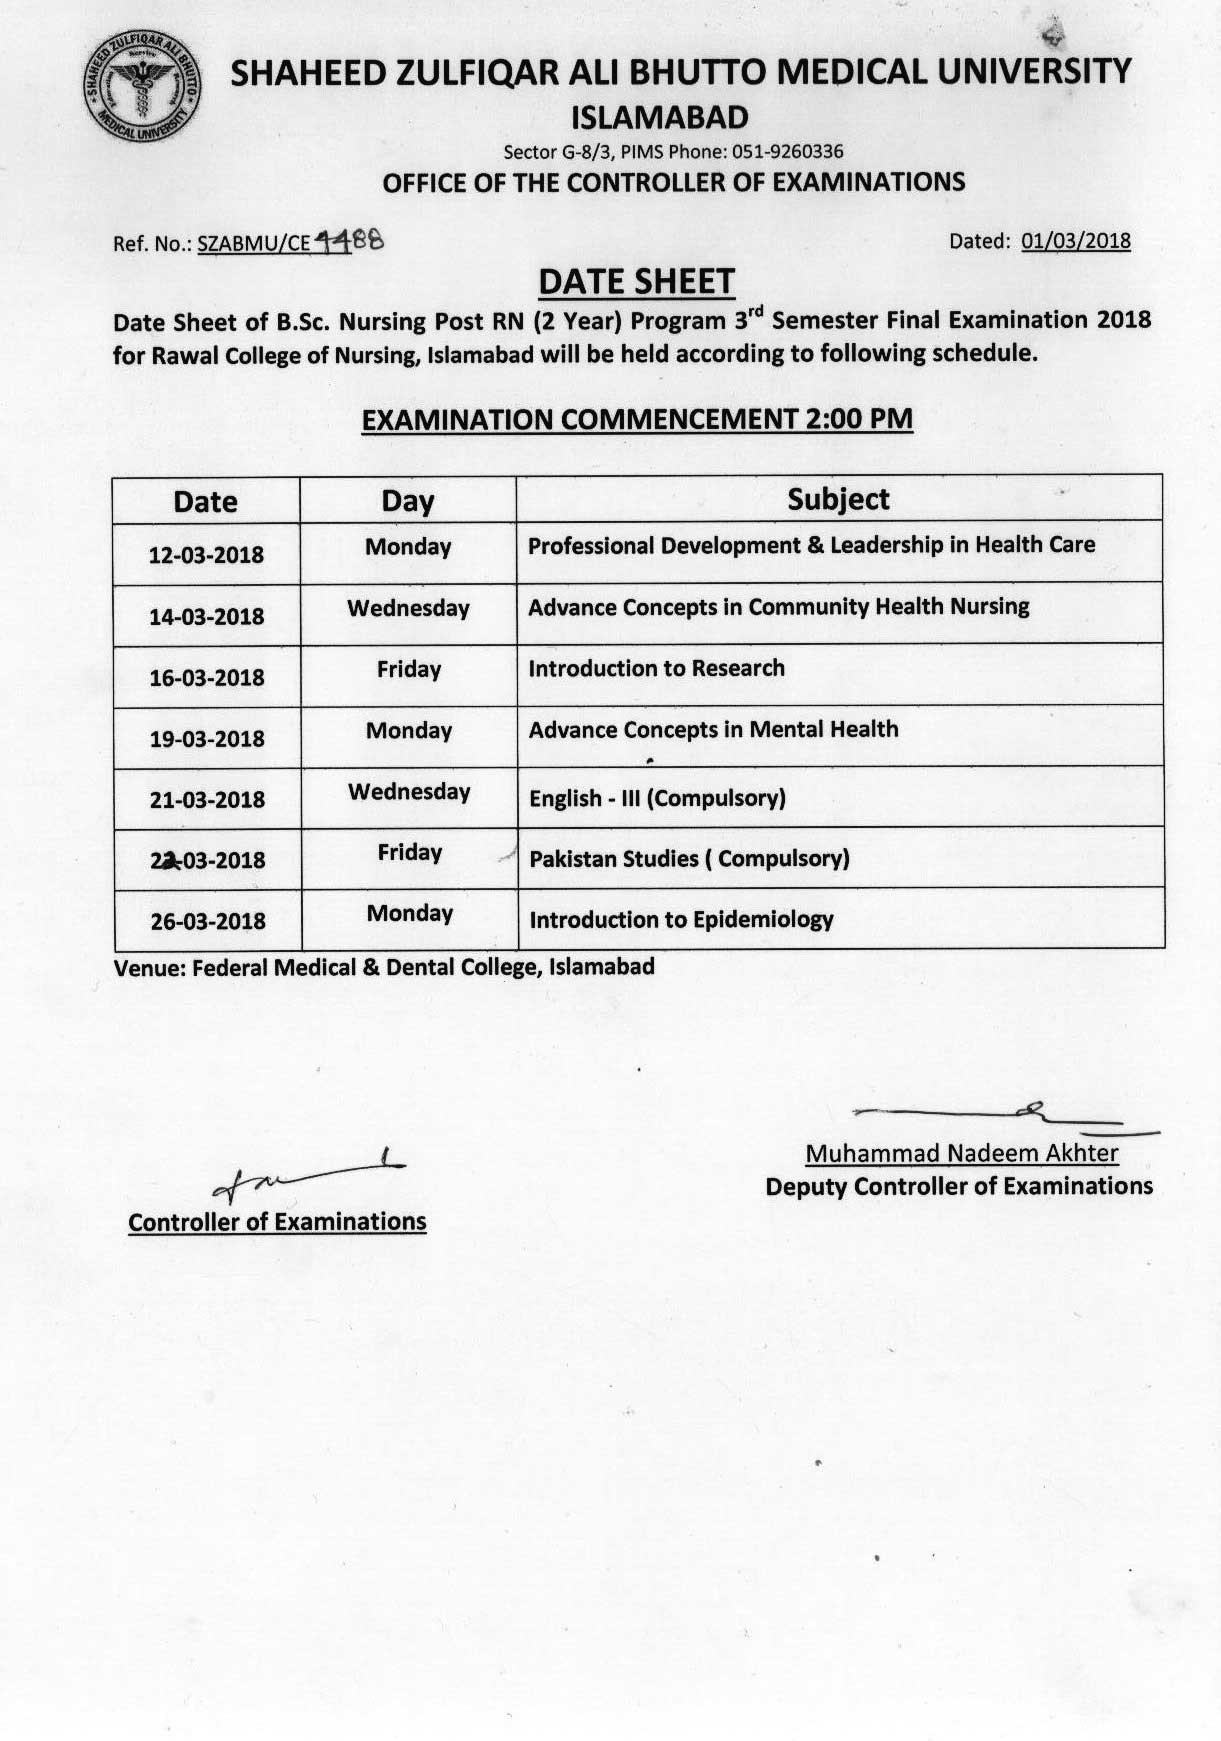 Date sheet - B.Sc. Nursing Post RN Third Semester Final Examination 2018